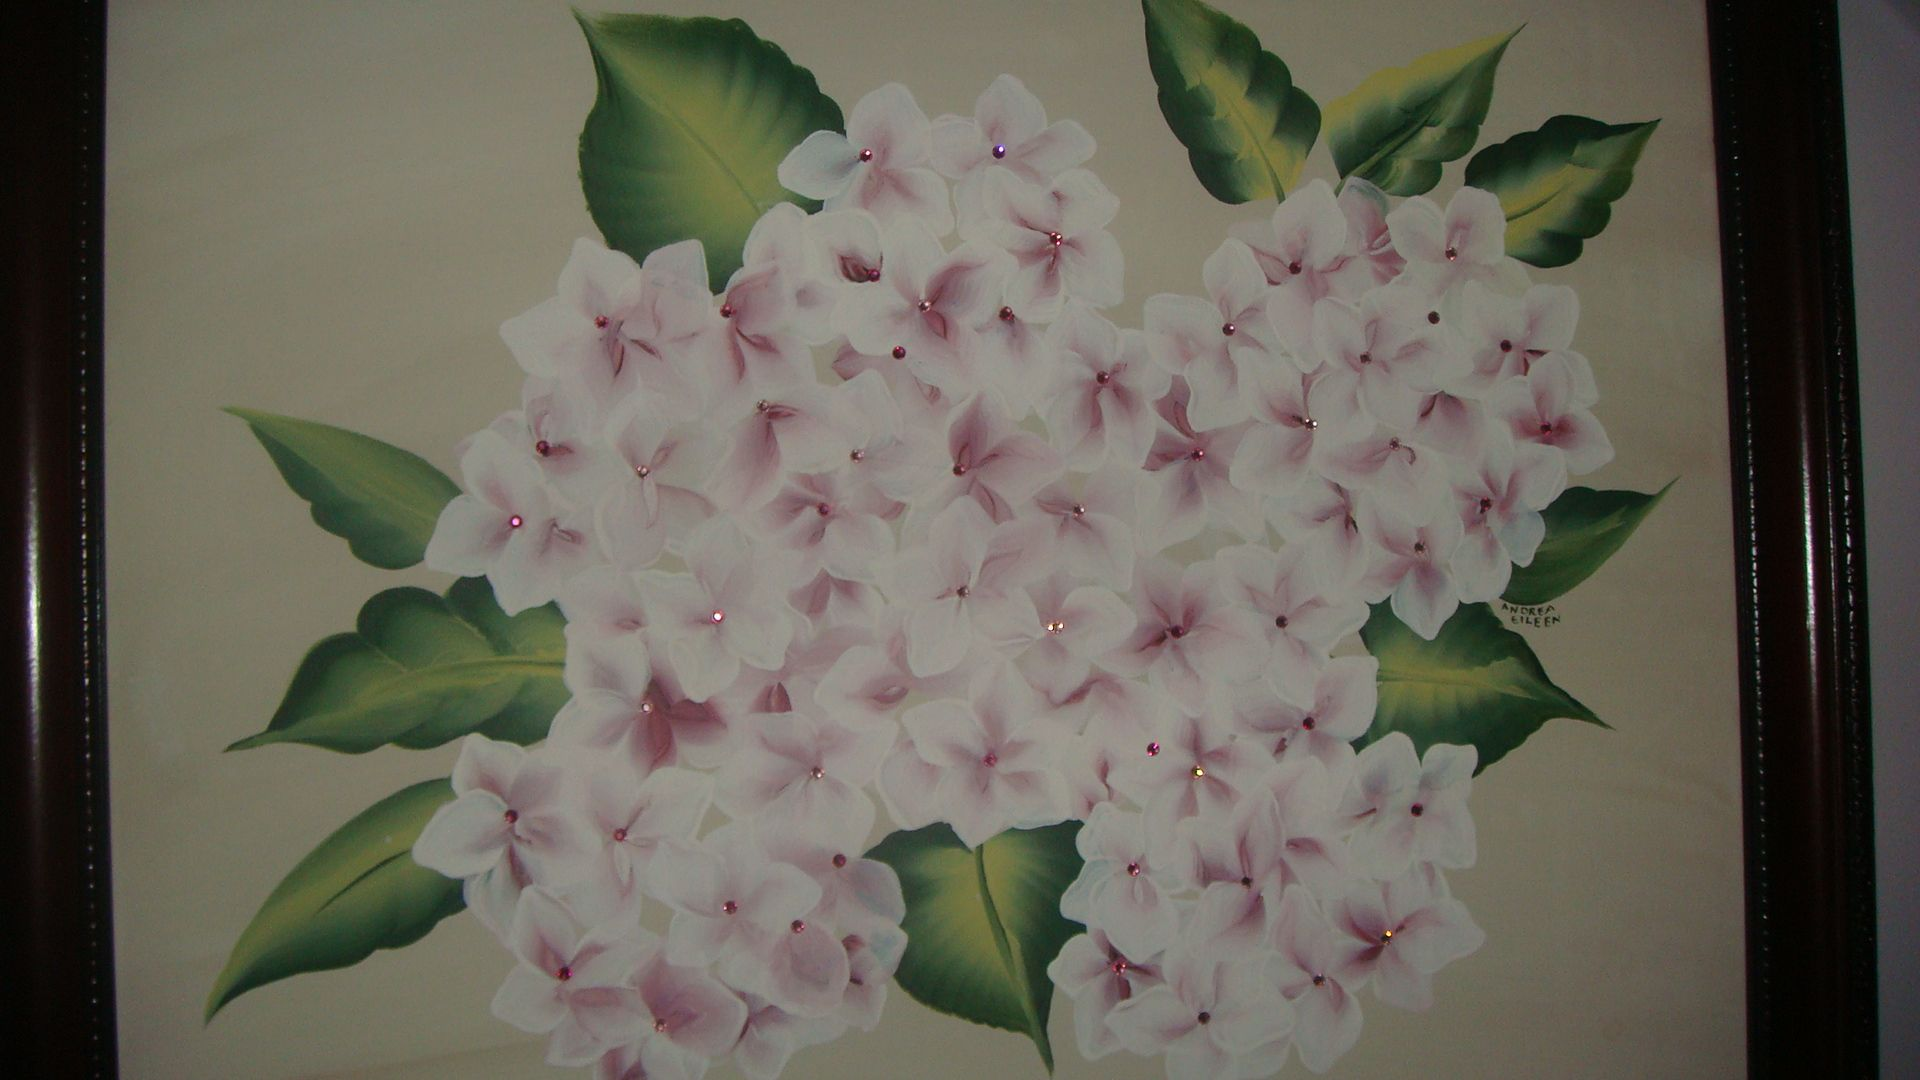 hydrangeas with crystal centers